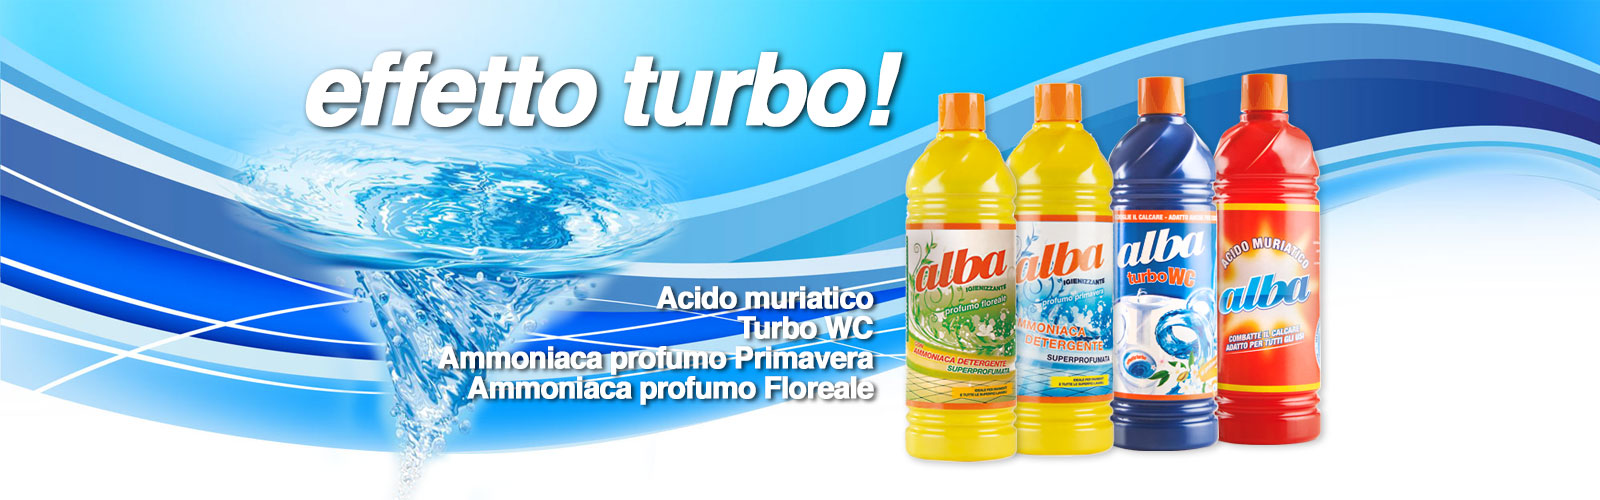 turbo ita